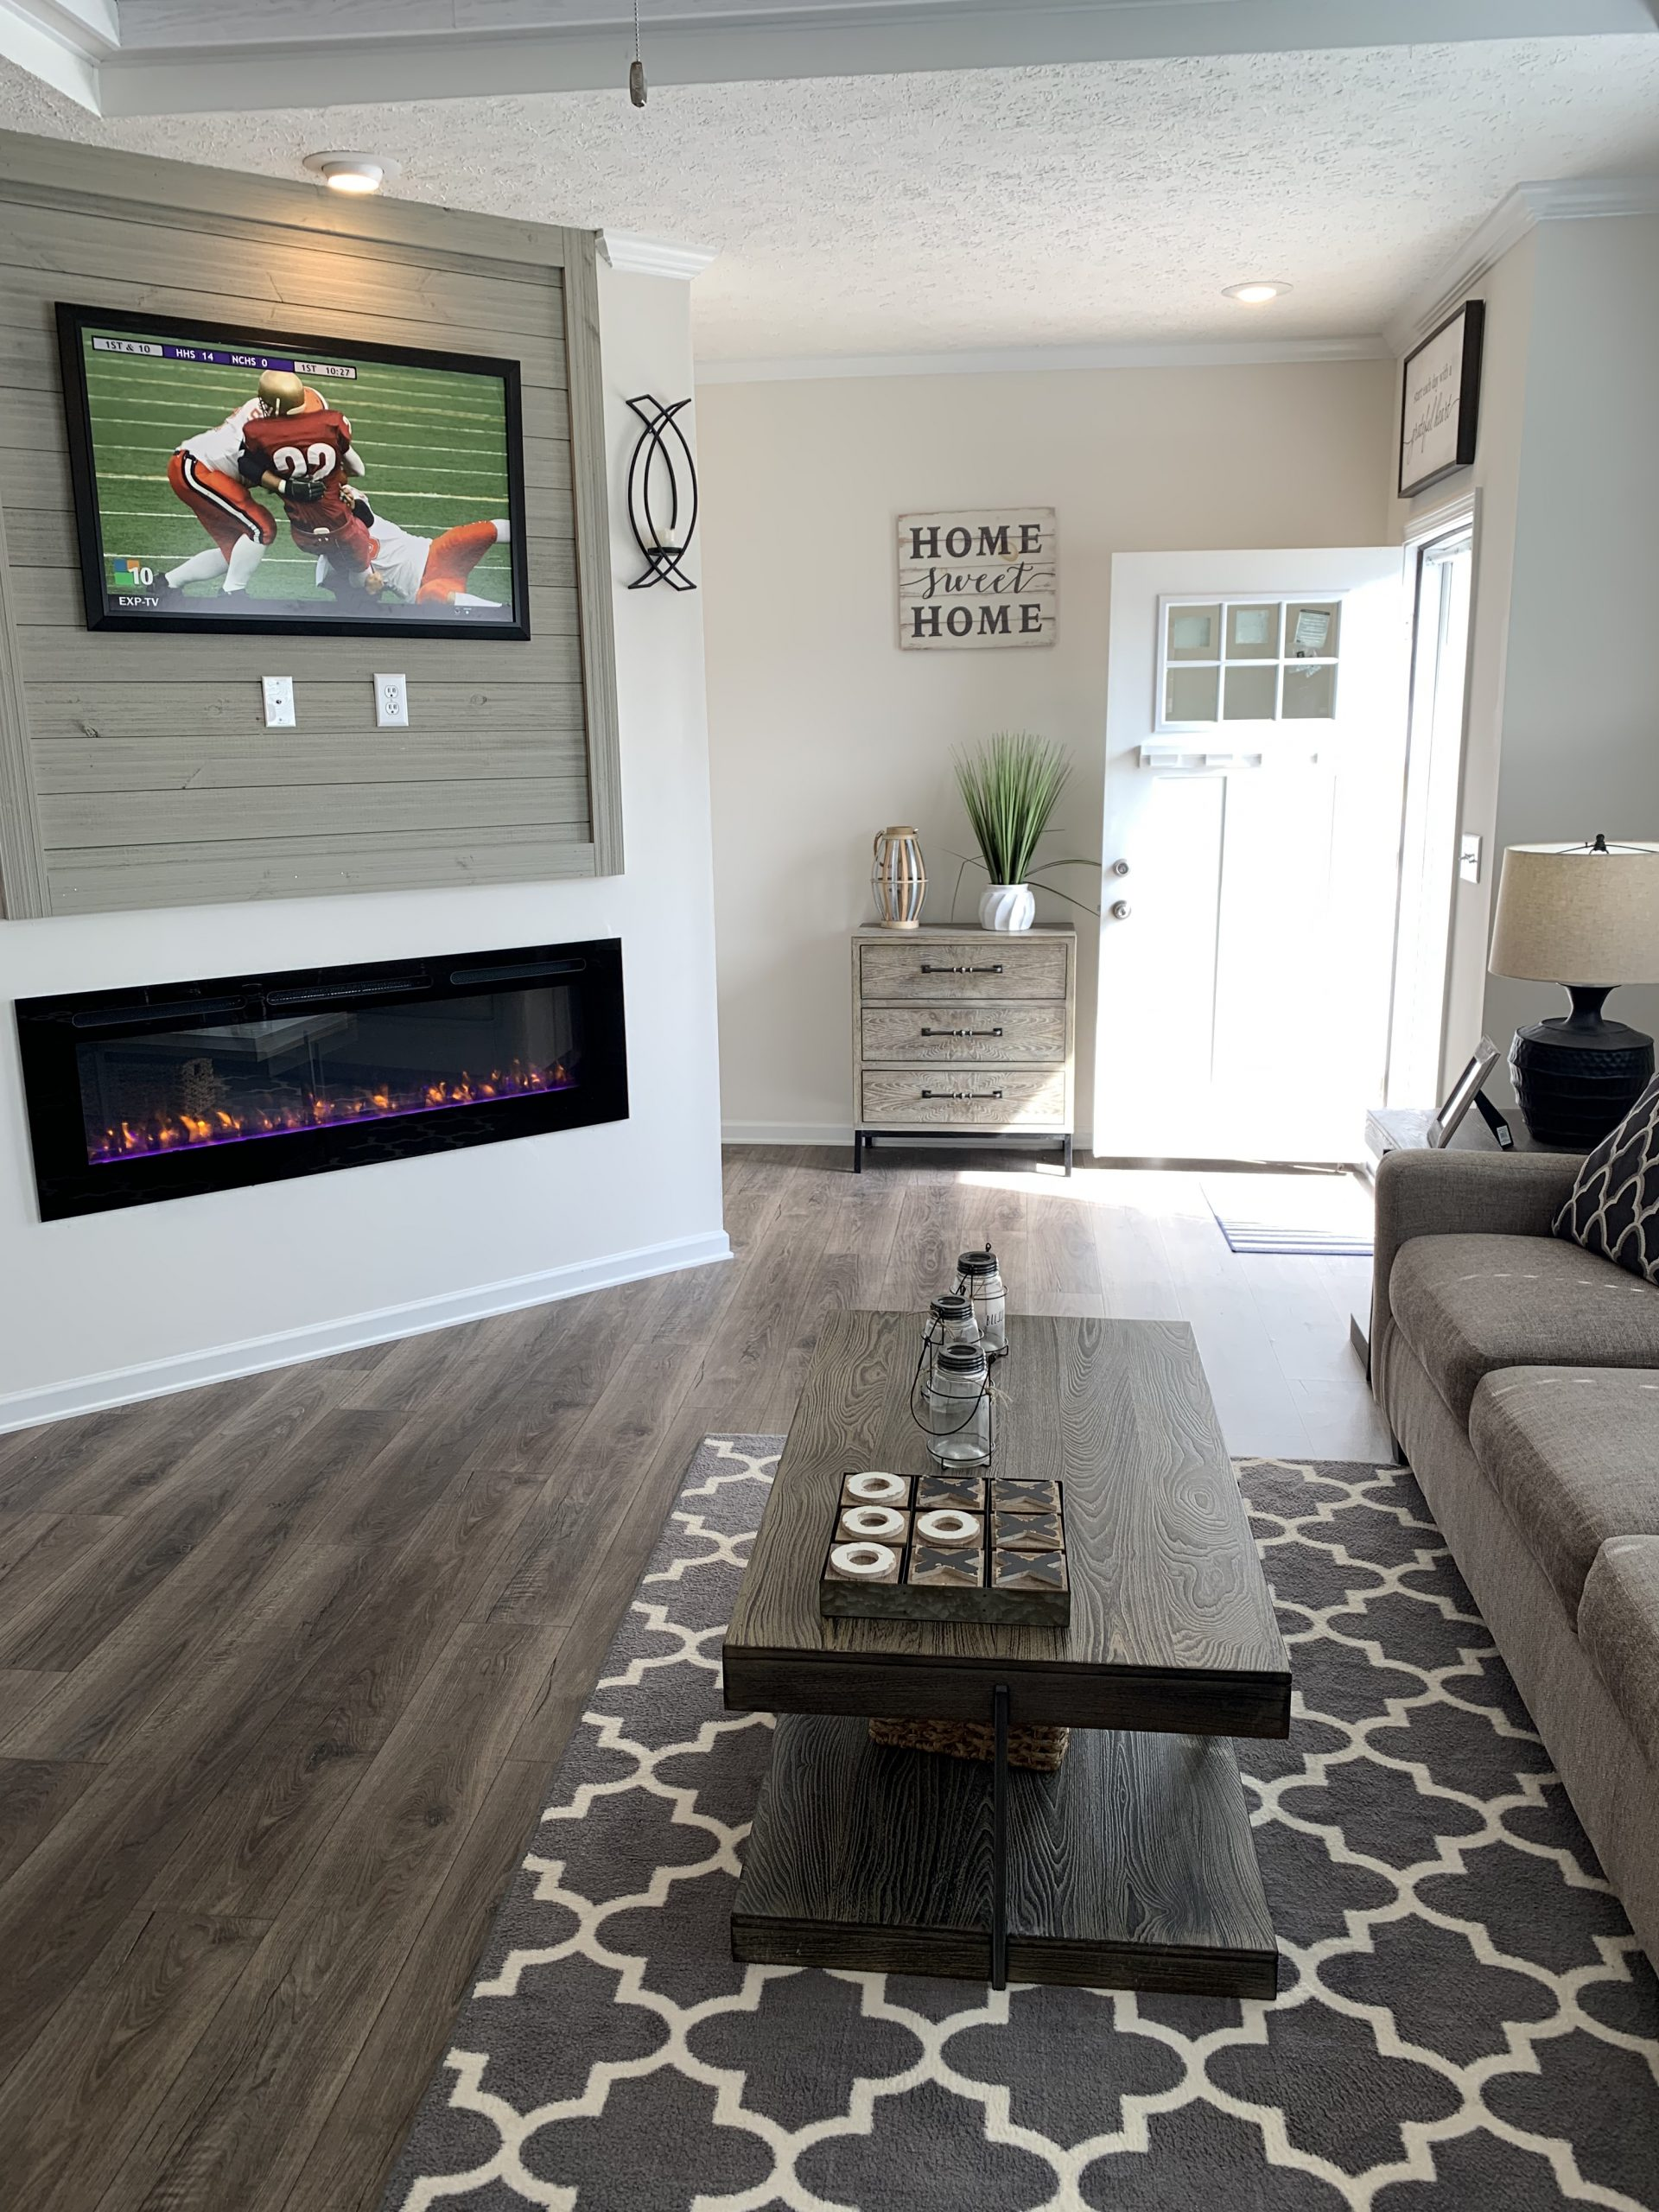 model home living room with beige sofa, farmhouse coffee table and side tables, gray and white area rug, large wall mirror, black lamps, LVP flooring.  Modern gas fireplace with wall mounted tv above.